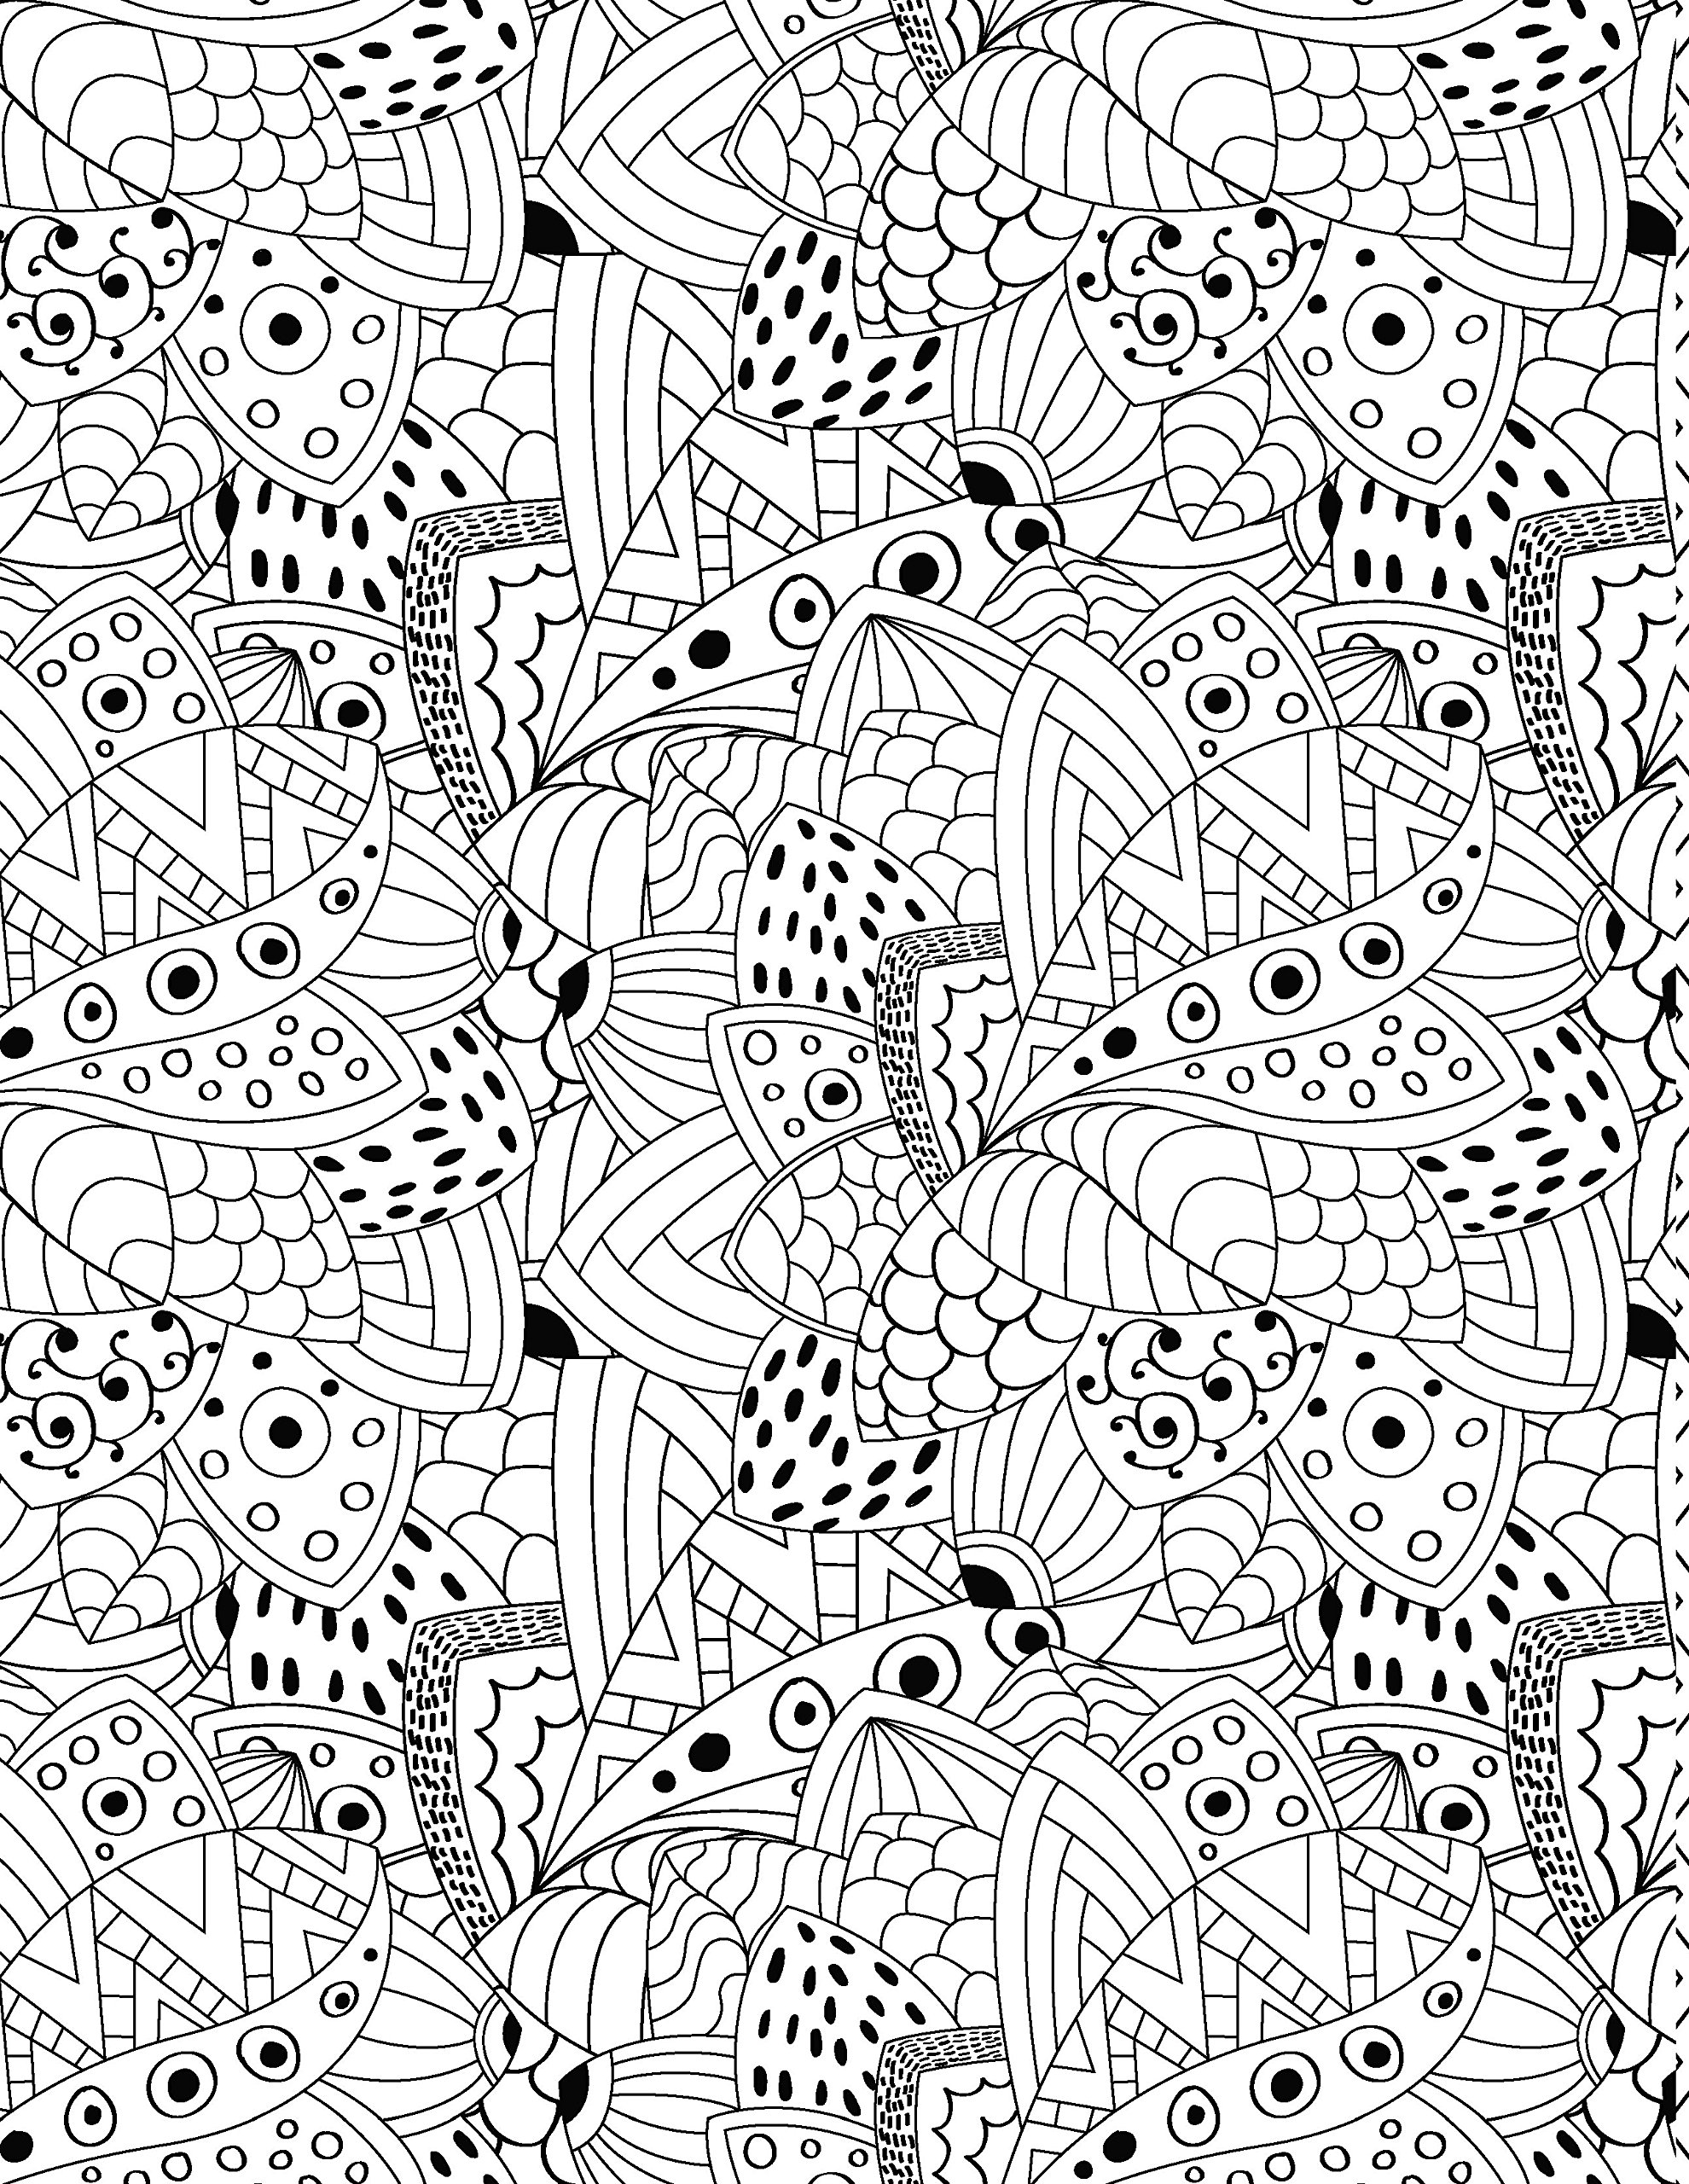 amazoncom just add color dazzling patterns 9781438006116 carlton publishing group books - Coloring Book Patterns